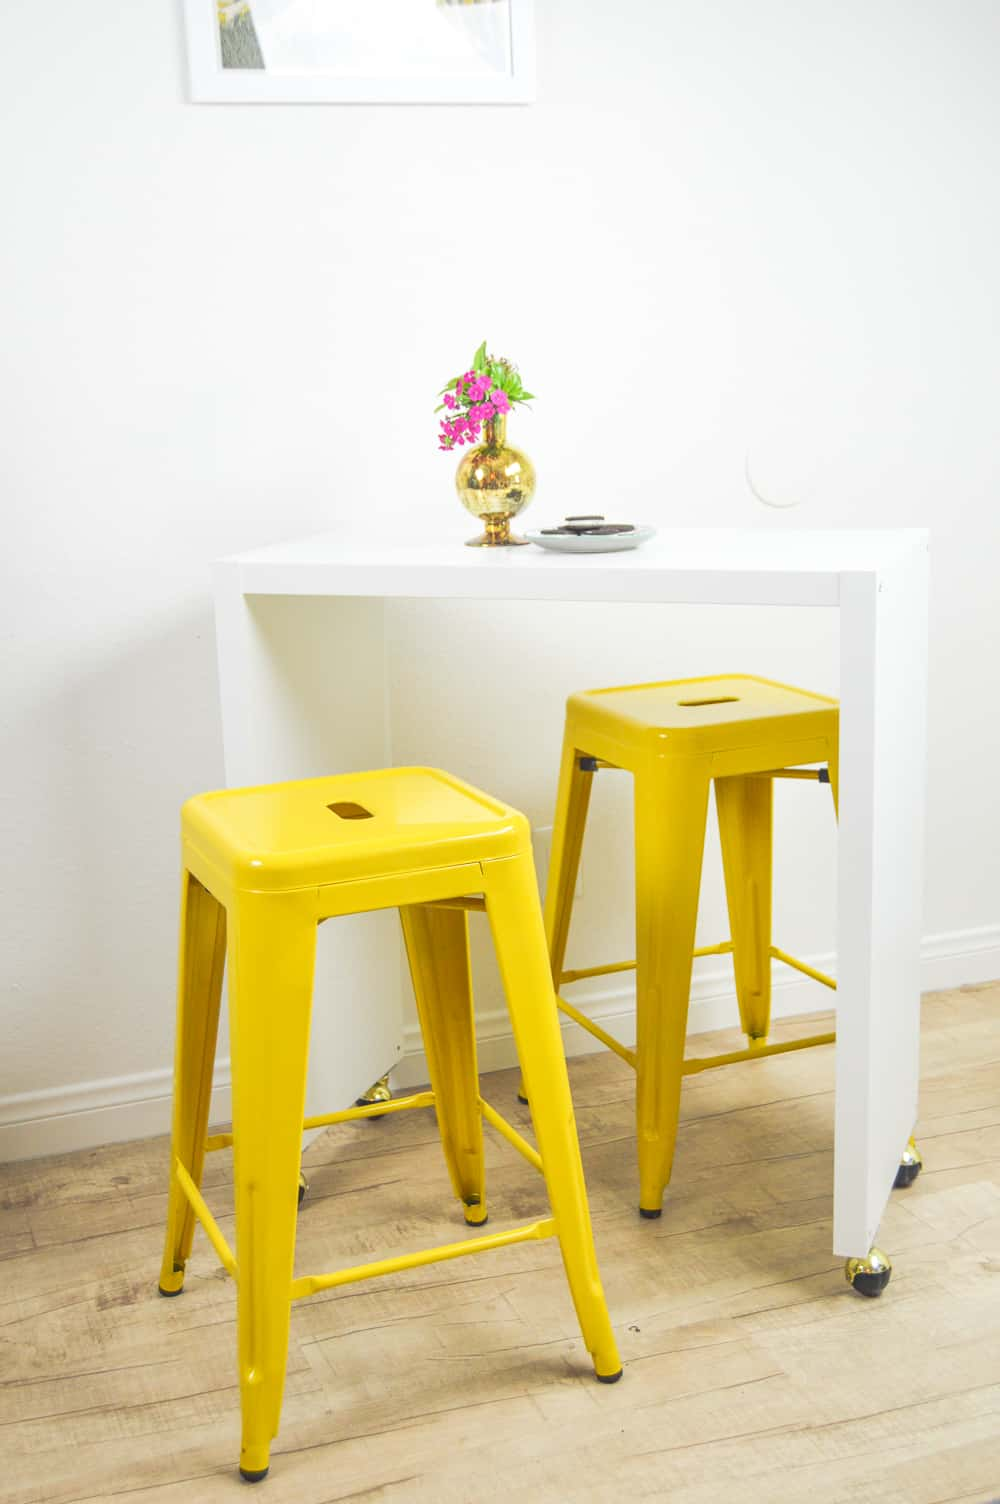 Ikea haxk rolling kitchen island with pained bar stools